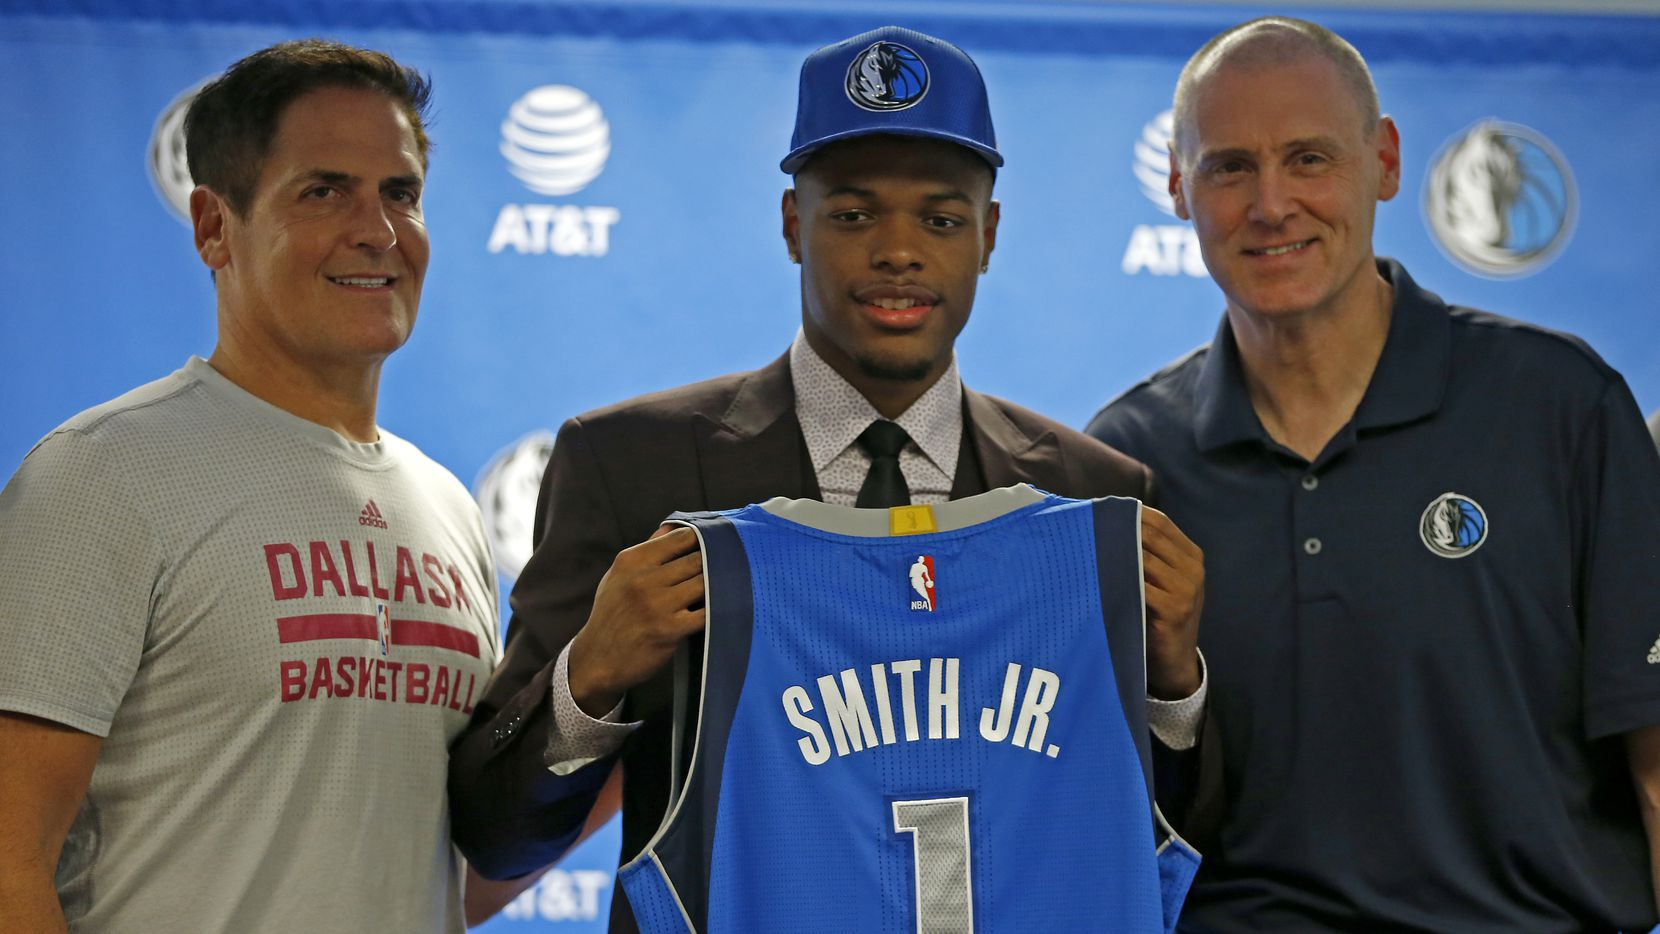 on sale bd2c5 af713 Dennis Smith Jr. will wear No. 1 as a Maverick. Why? Better ...